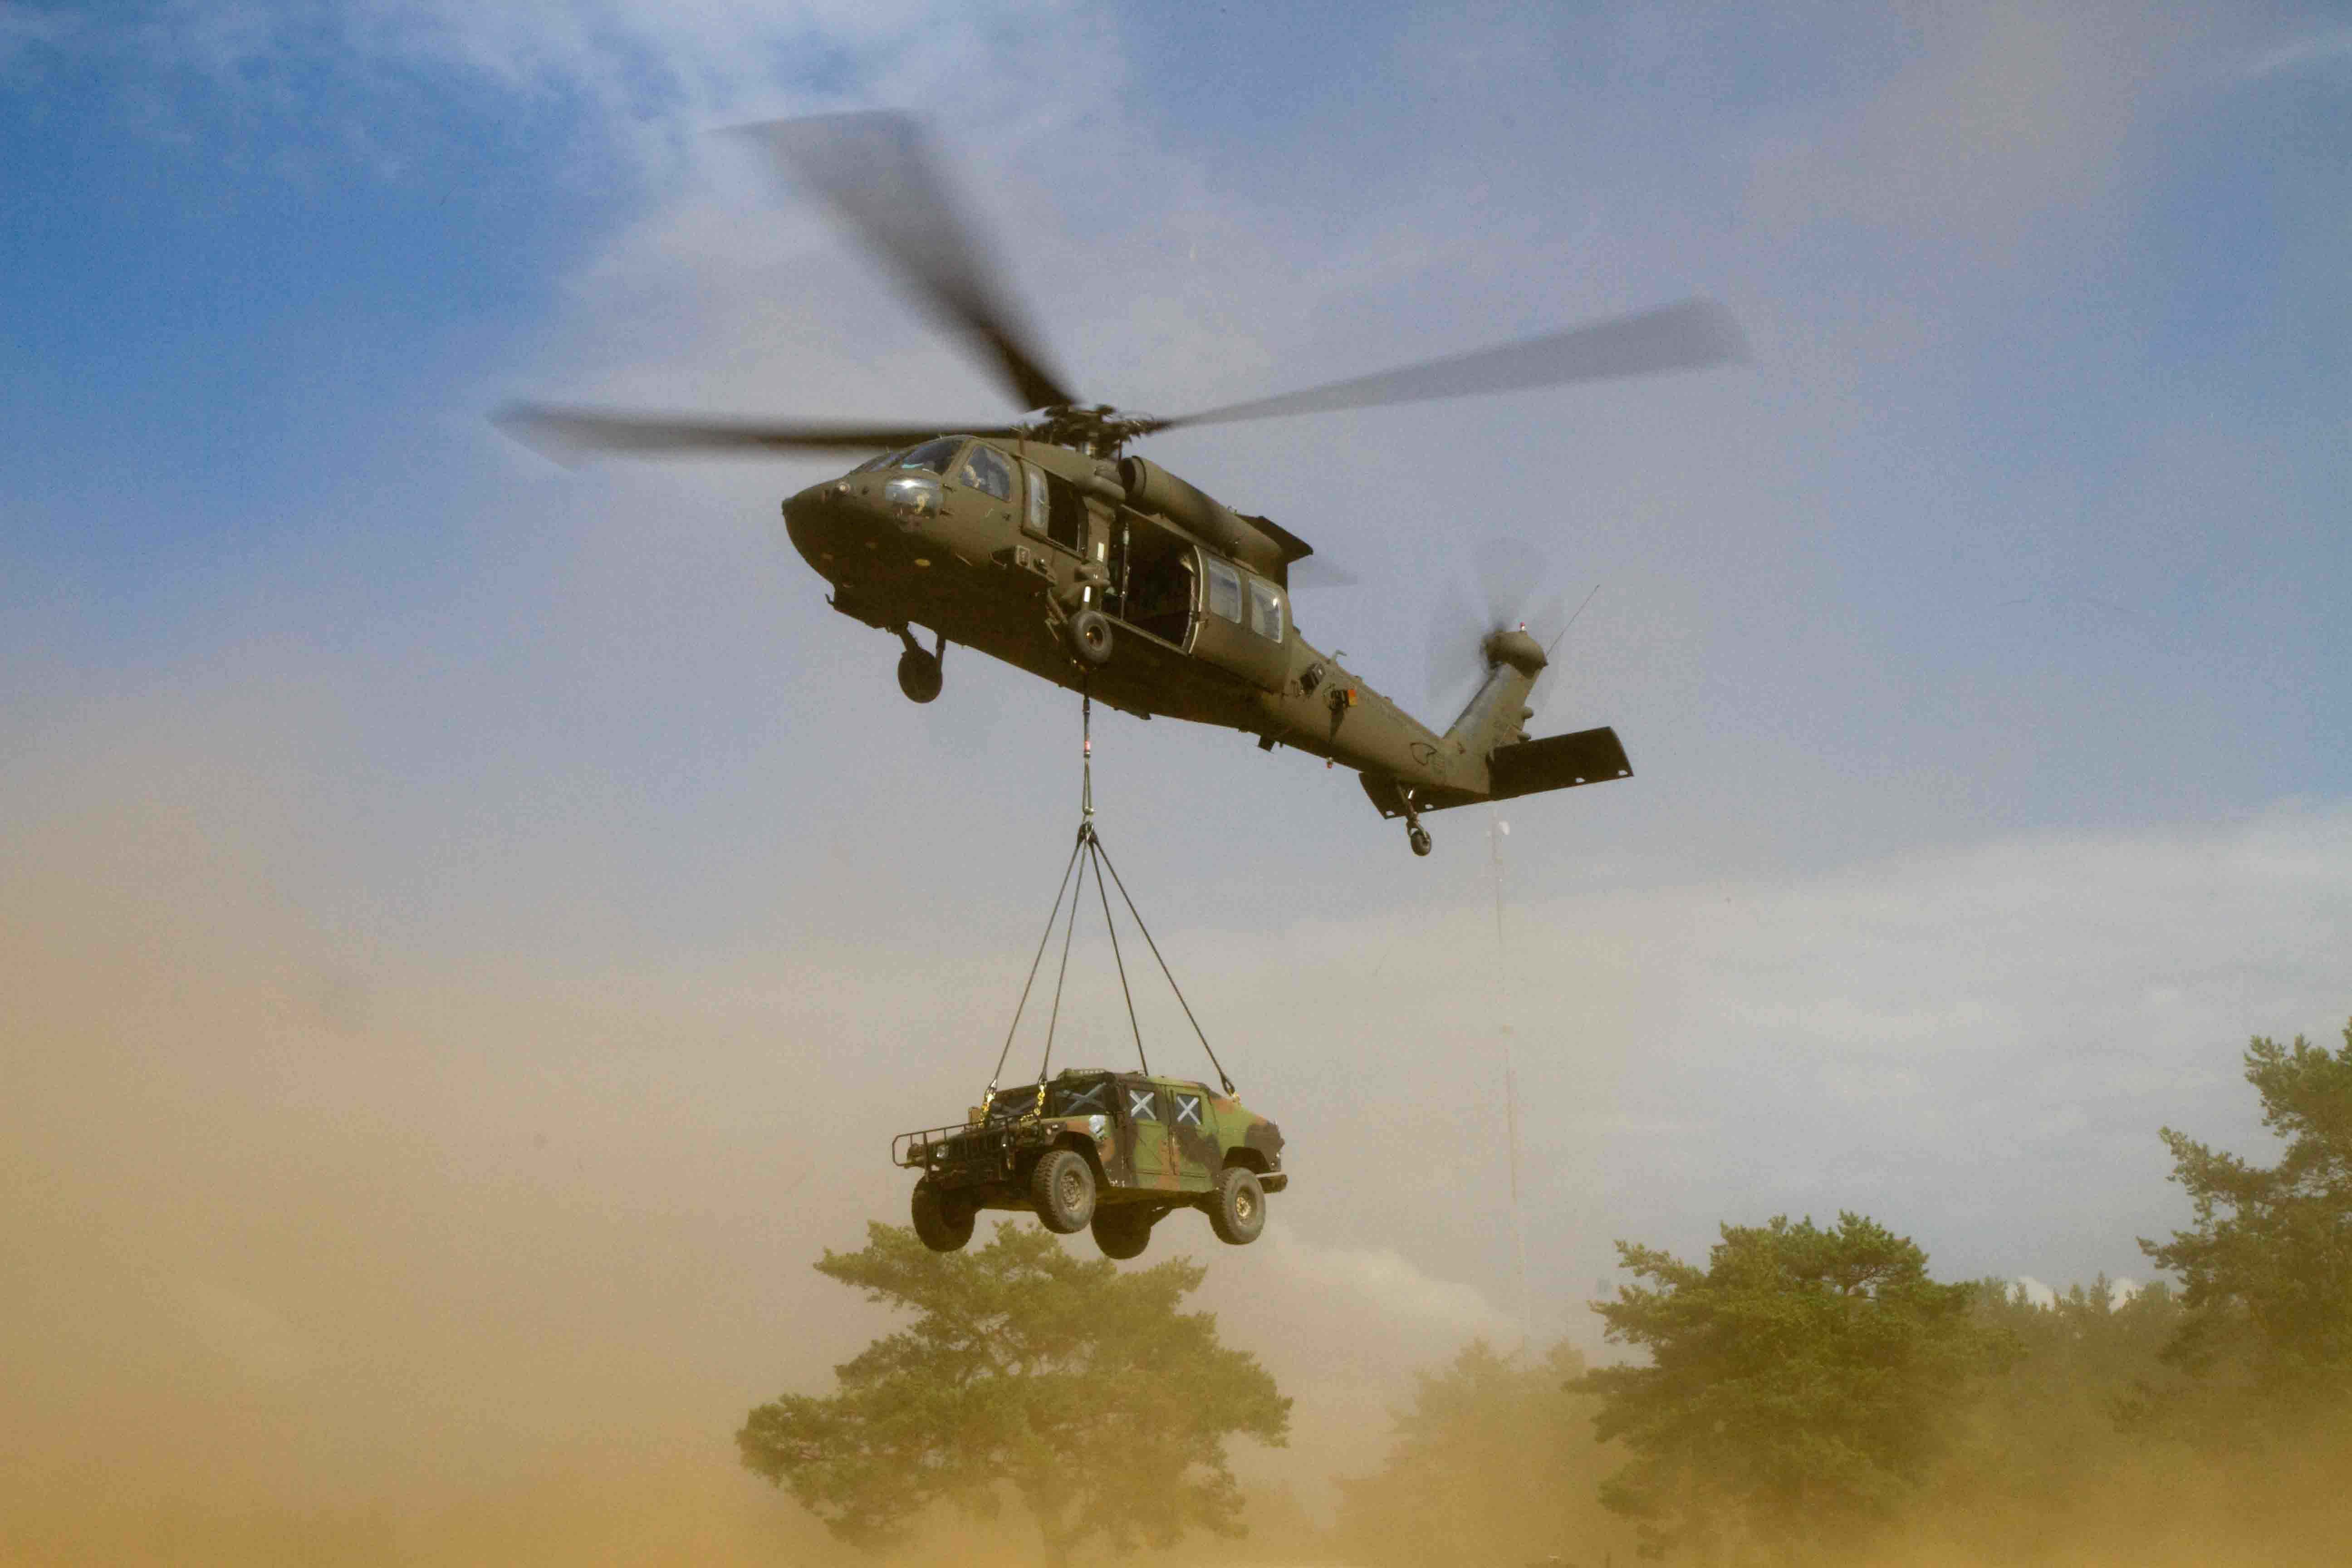 A UH-60M Black Hawk helicopter being operated by B Company, 43rd Assault Helicopter Battalion, 3rd Cavalry Regiment, 3rd Infantry Division, lifts off after having a High Mobility Multipurpose Wheeled Vehicles (HMMWV) sling loaded to it by Soldiers on the ground assigned to Dog Company, 1st Battalion, 503rd Infantry Regiment, 173rd Infantry Brigade Combat Team (Airborne), 4th Infantry Division and Lithuanian Land Forces Soldiers assigned to the Grand Duchess Birut? Uhlan Battalion (BUB), during exercise Uhlan Fury being held at the Gen. Silvestras Zlikaliskas Training Area, Pabrade, Lithuania, Aug. 10, 2015. The U.S. units are in Europe as part of Atlantic Resolve, a demonstration of continued U.S. commitment to the collective security of NATO and to enduring peace and stability in the region. U.S. Army Europe is leading Atlantic Resolve enhanced land force multinational training and security cooperation activities taking place across Estonia, Latvia, Lithuania, Romania, and Bulgaria to ensure multinational interoperability, strengthen relationships among allied militaries, contribute to regional stability and demonstrate U.S. commitment to NATO. (U.S. Army Photo by Sgt. James Avery, 16th Mobile Public Affairs Detachment)